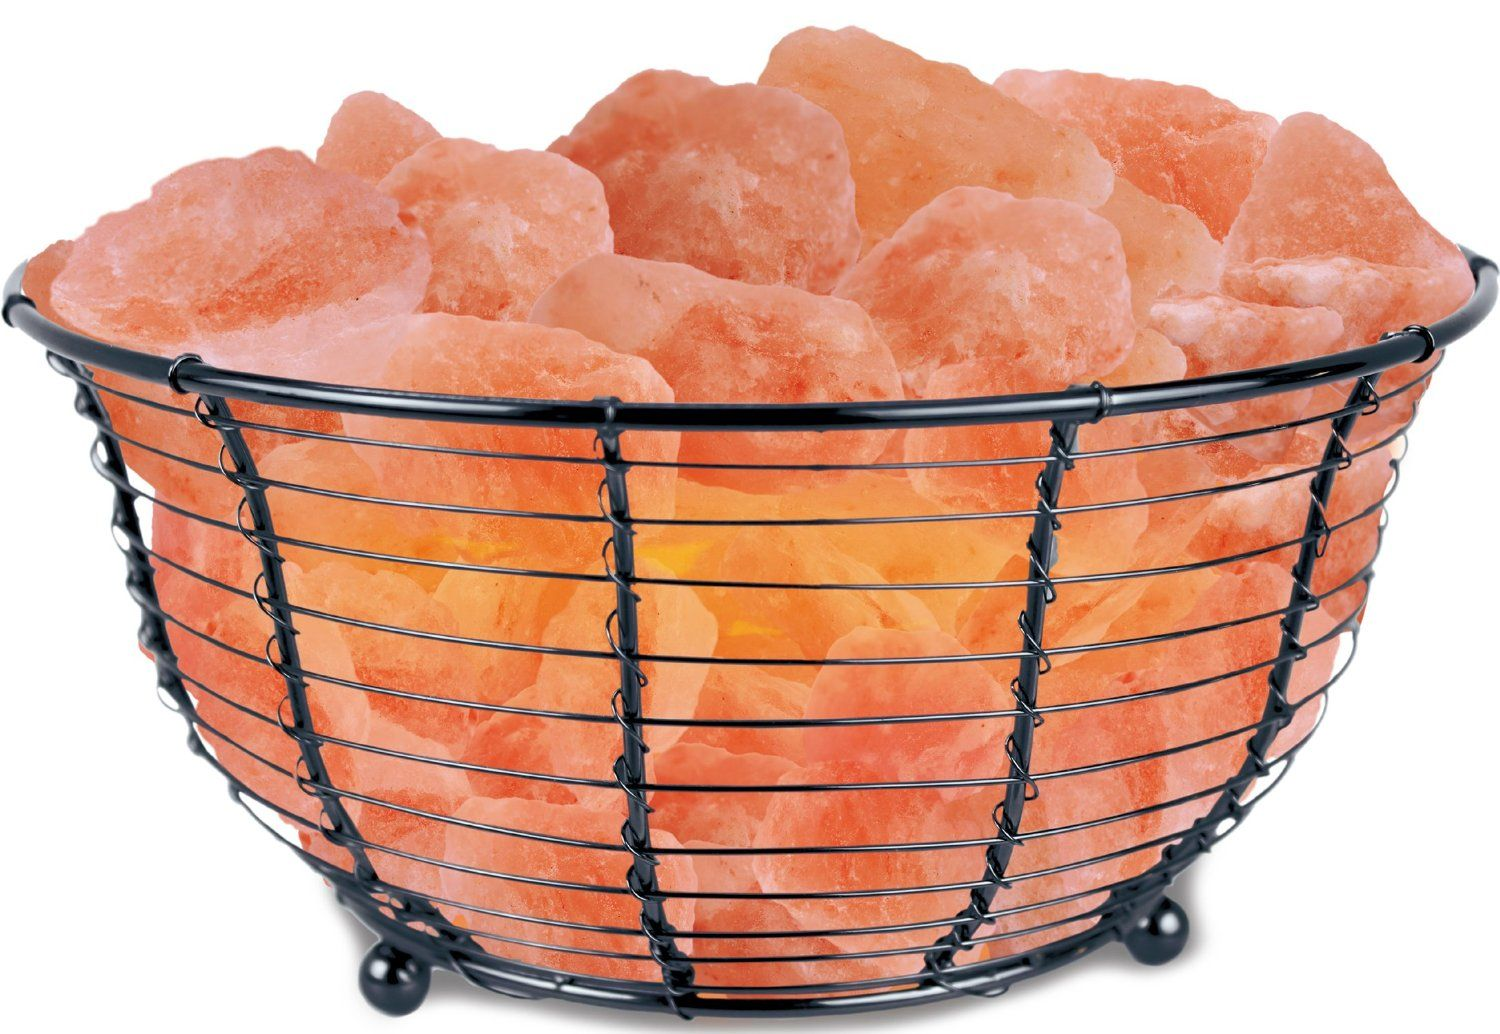 Essential Oil Deals Finds Diffusers Cases Rollerballs Bottles Jars And More Essential Oil Accessories One Essential Community Salt Lamp Himalayan Salt Lamp Benefits Natural Himalayan Salt Lamp